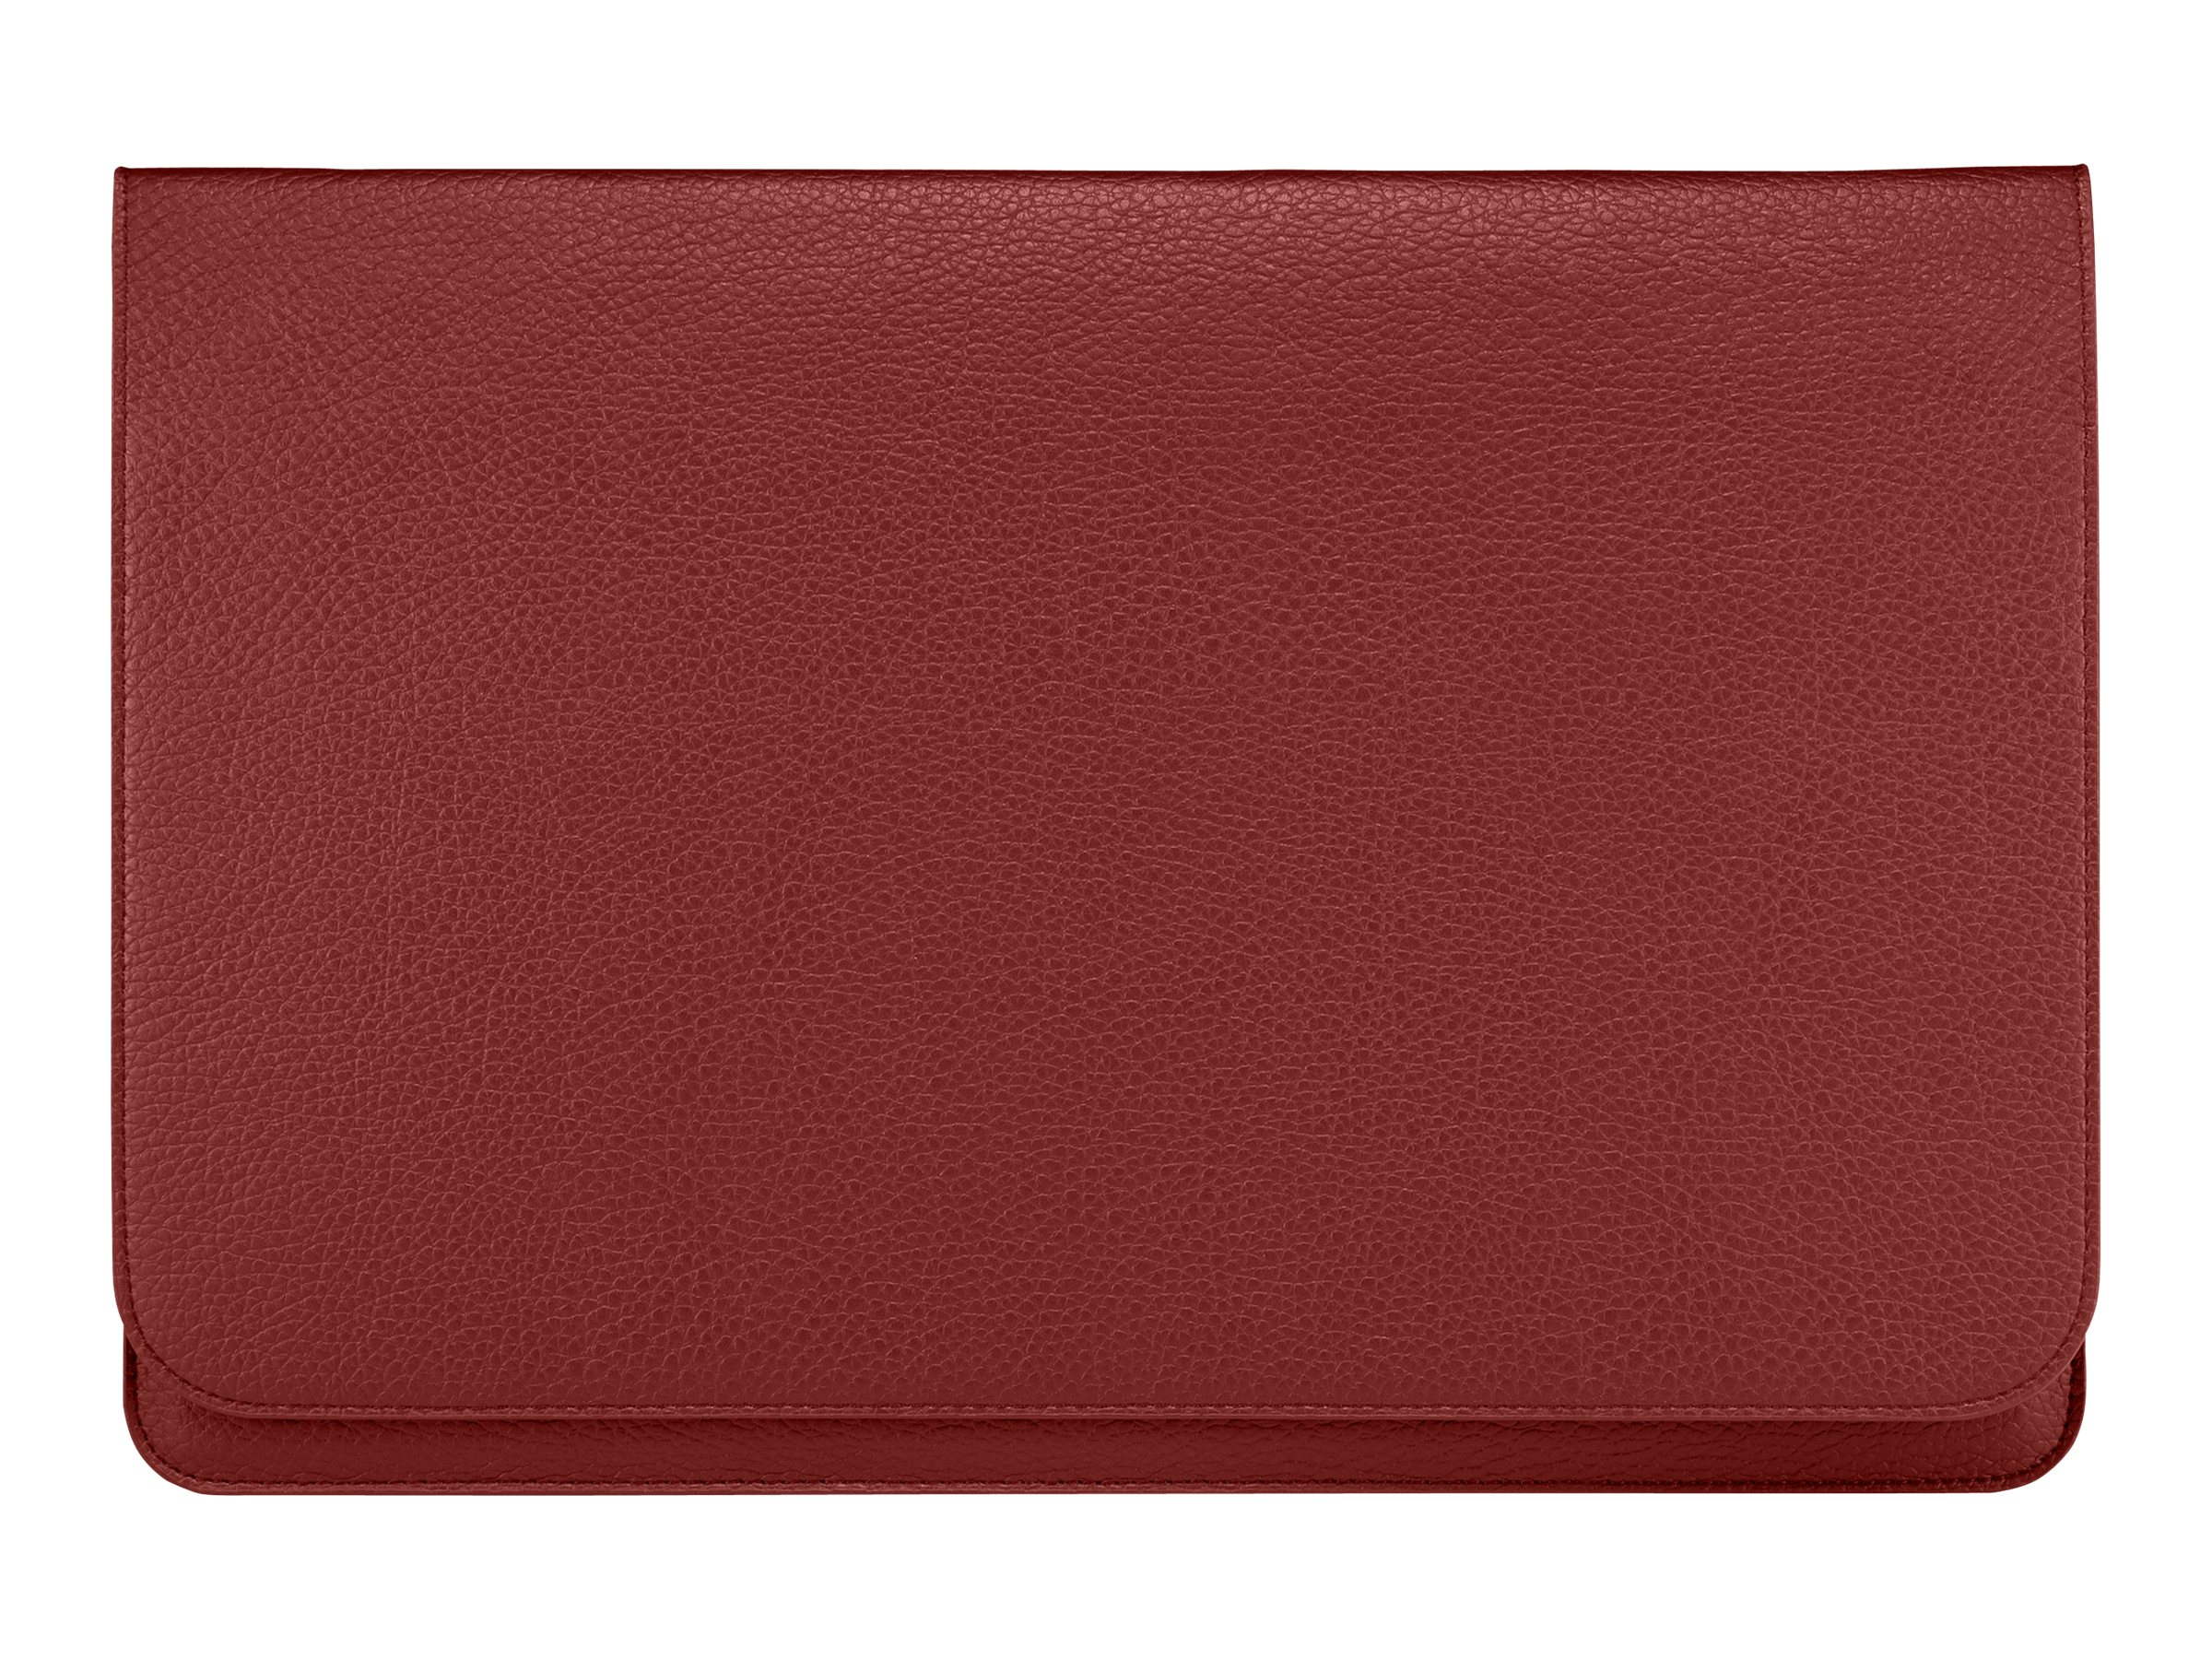 Samsung Ultrabook 13.3 Leather Pouch, Red, AA-BS8N13R/US, 15314379, Carrying Cases - Notebook